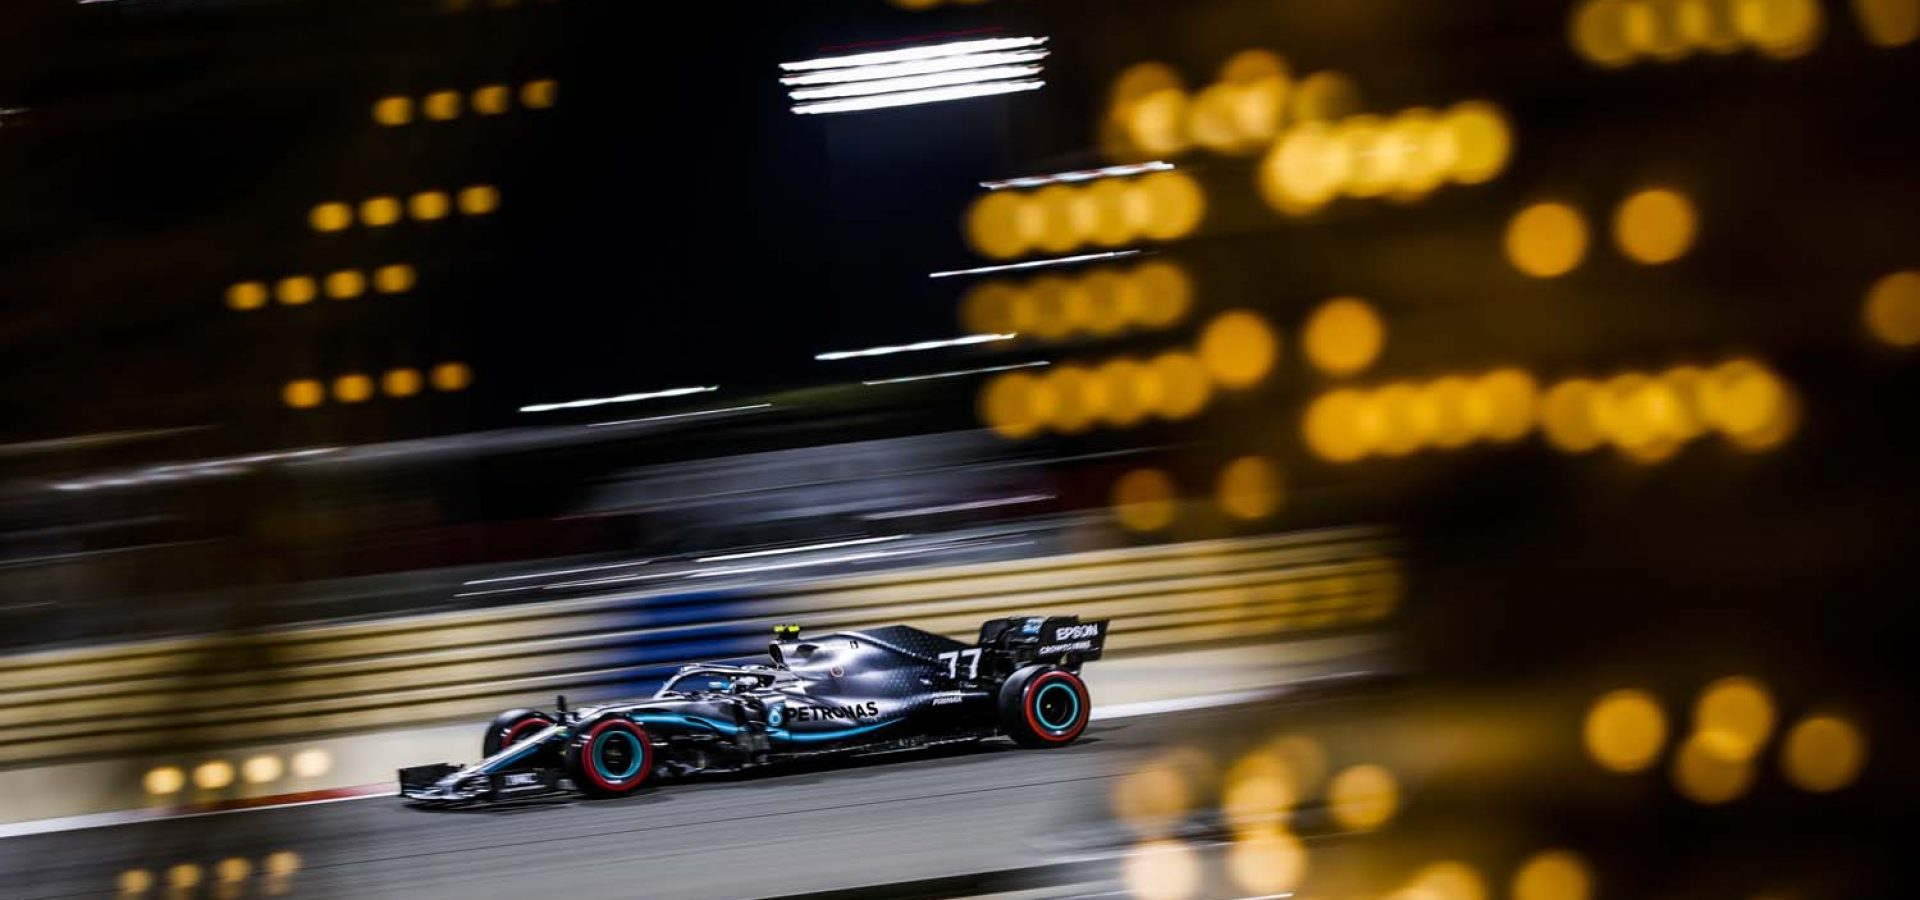 2019 Bahrain Grand Prix, Saturday - Wolfgang Wilhelm Valtteri Bottas Mercedes